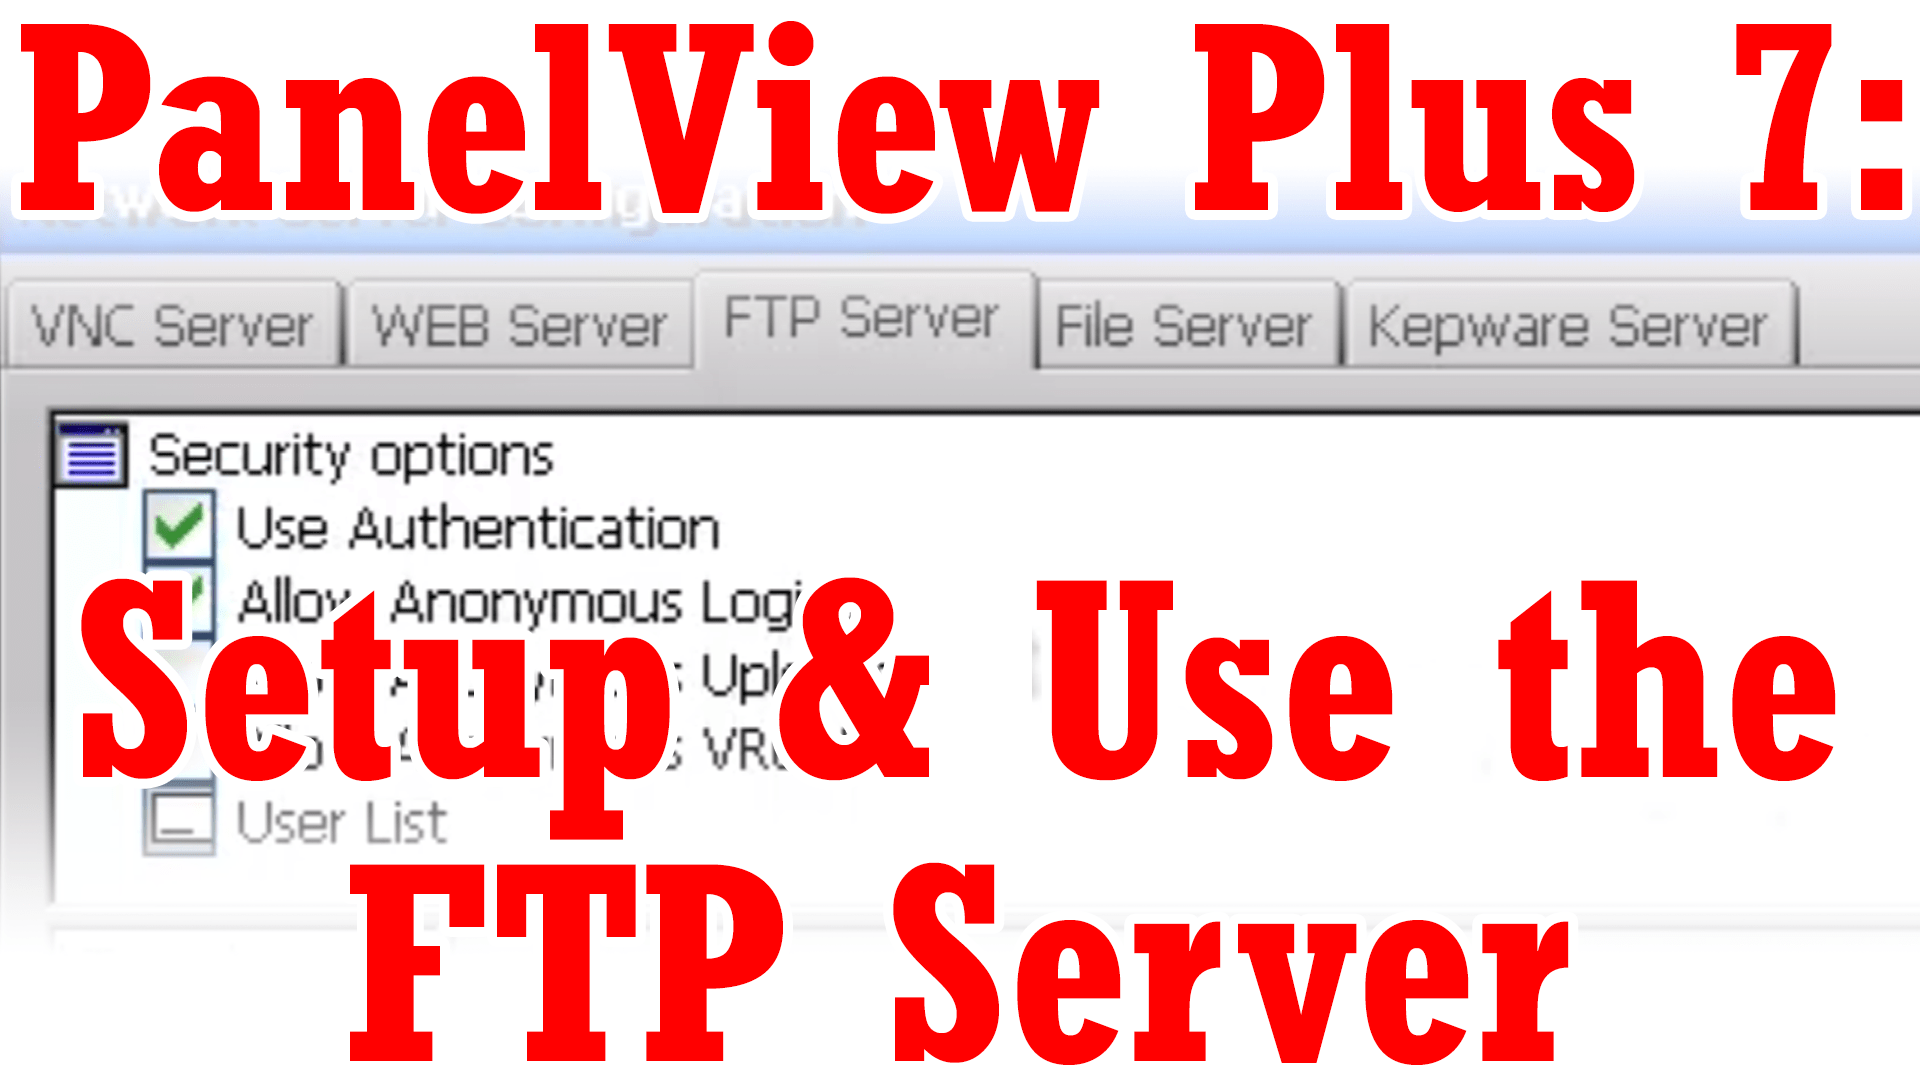 Setup and Use the PanelView Plus 7 FTP Server - The